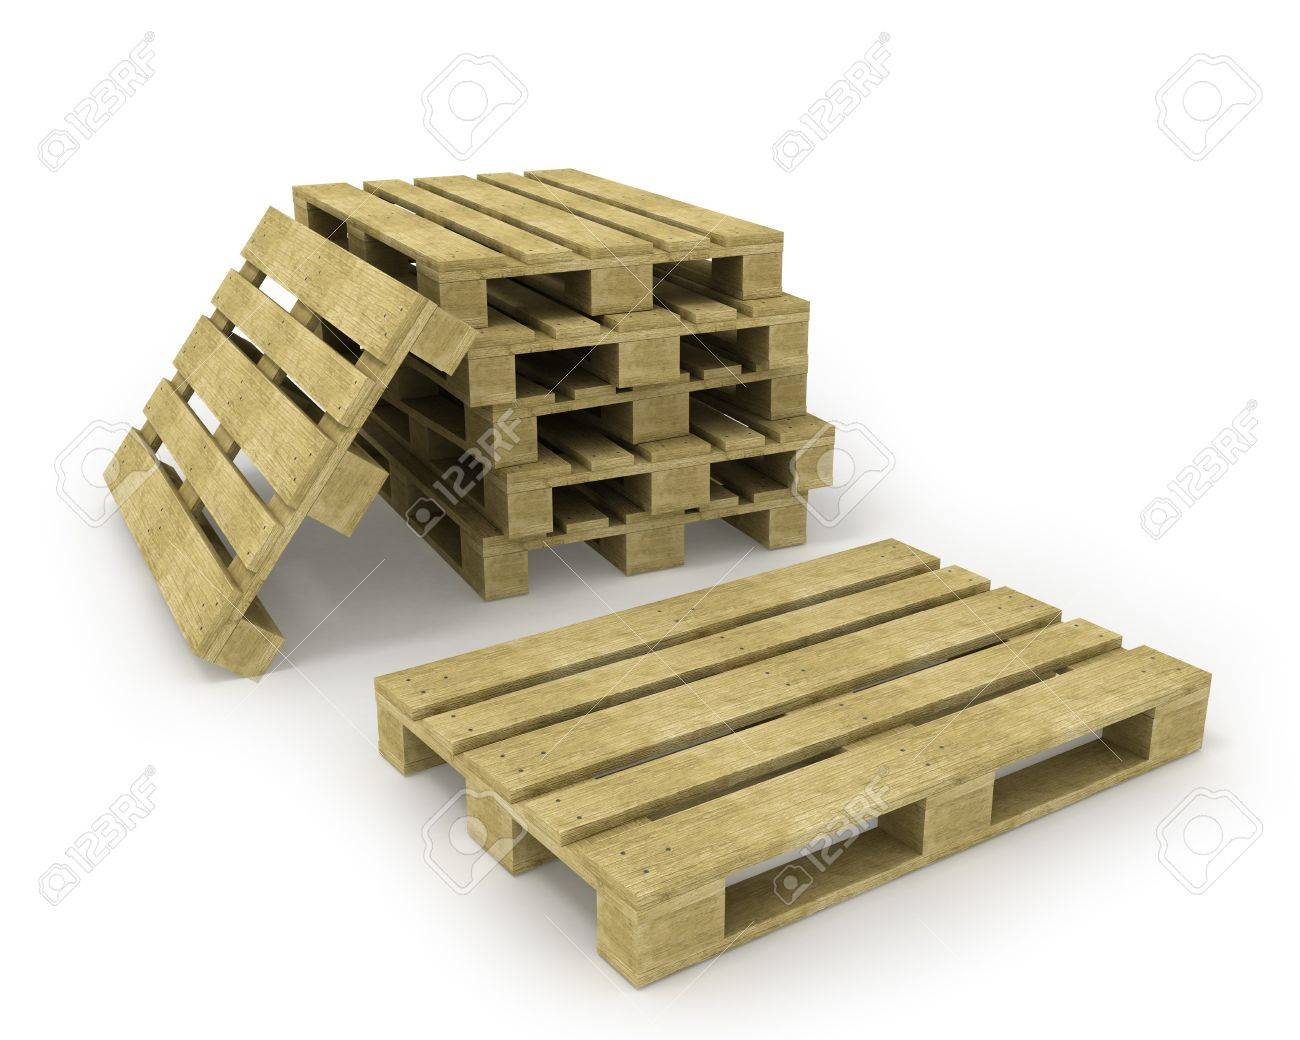 Wooden pallet and stack of pallets isolated on white Stock Photo - 8239786